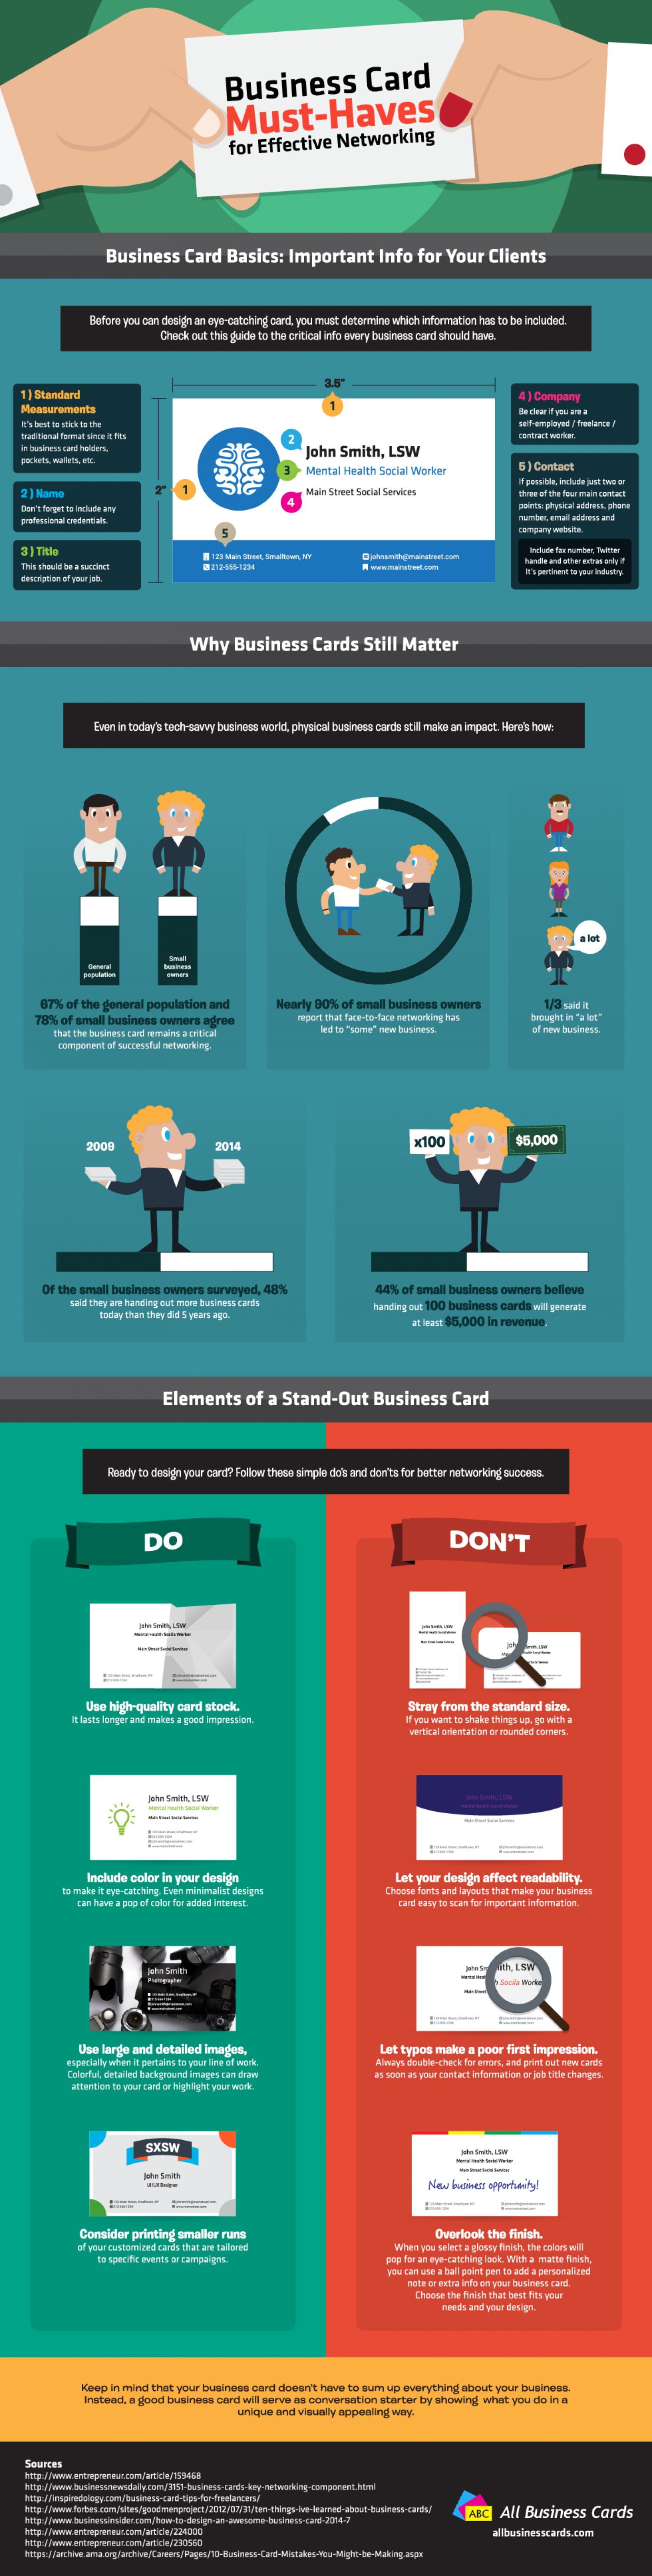 Business Card Must Haves For Effective Networking Infographic